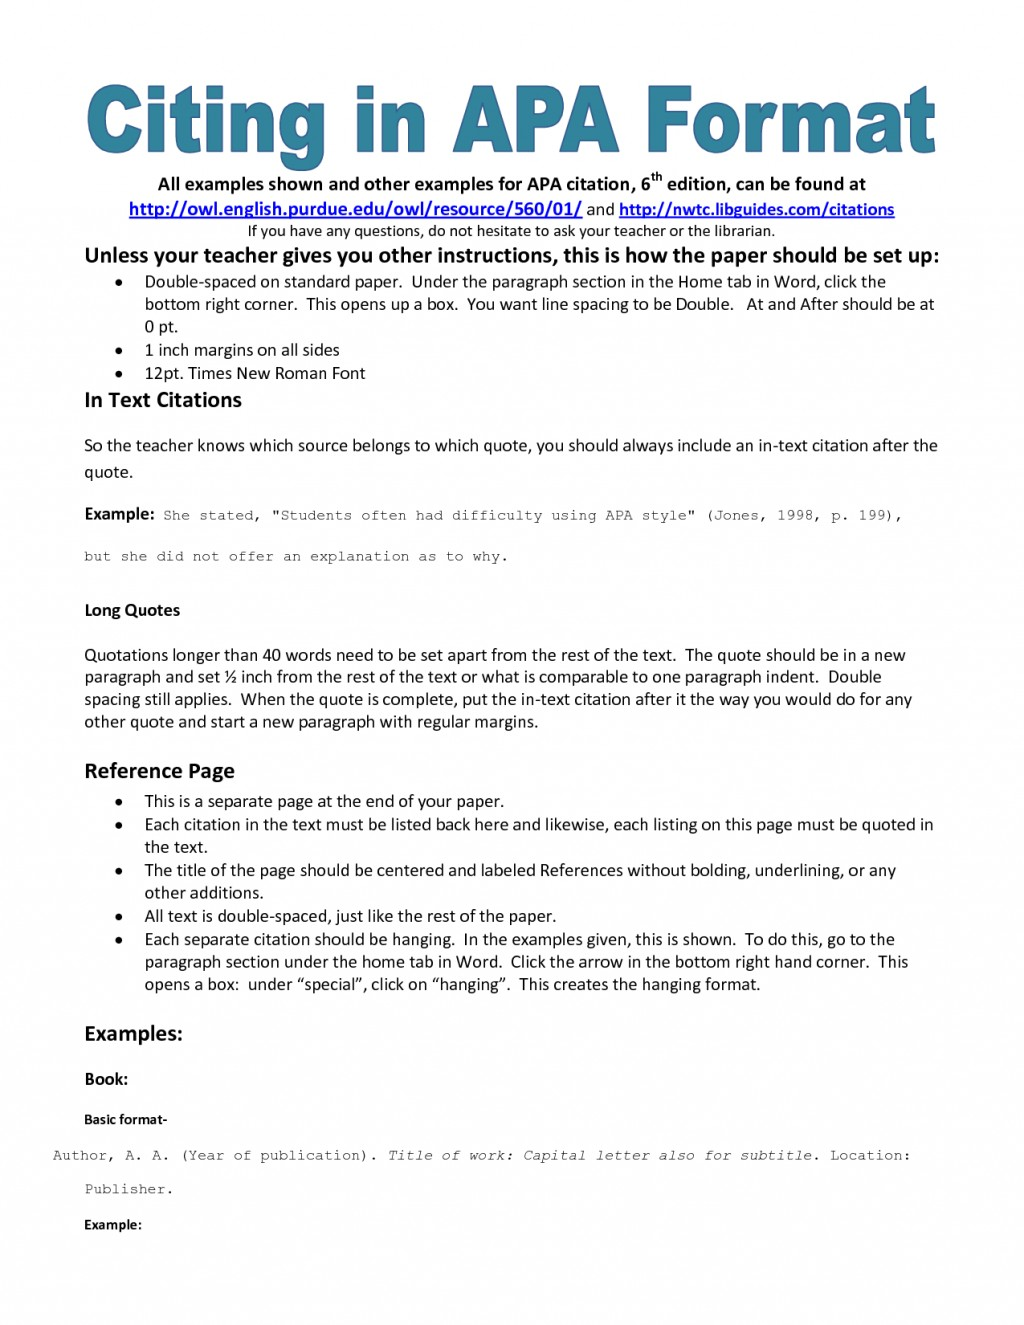 001 Apa Citation Format Paper Research Awesome Conference Style Model Unpublished Large